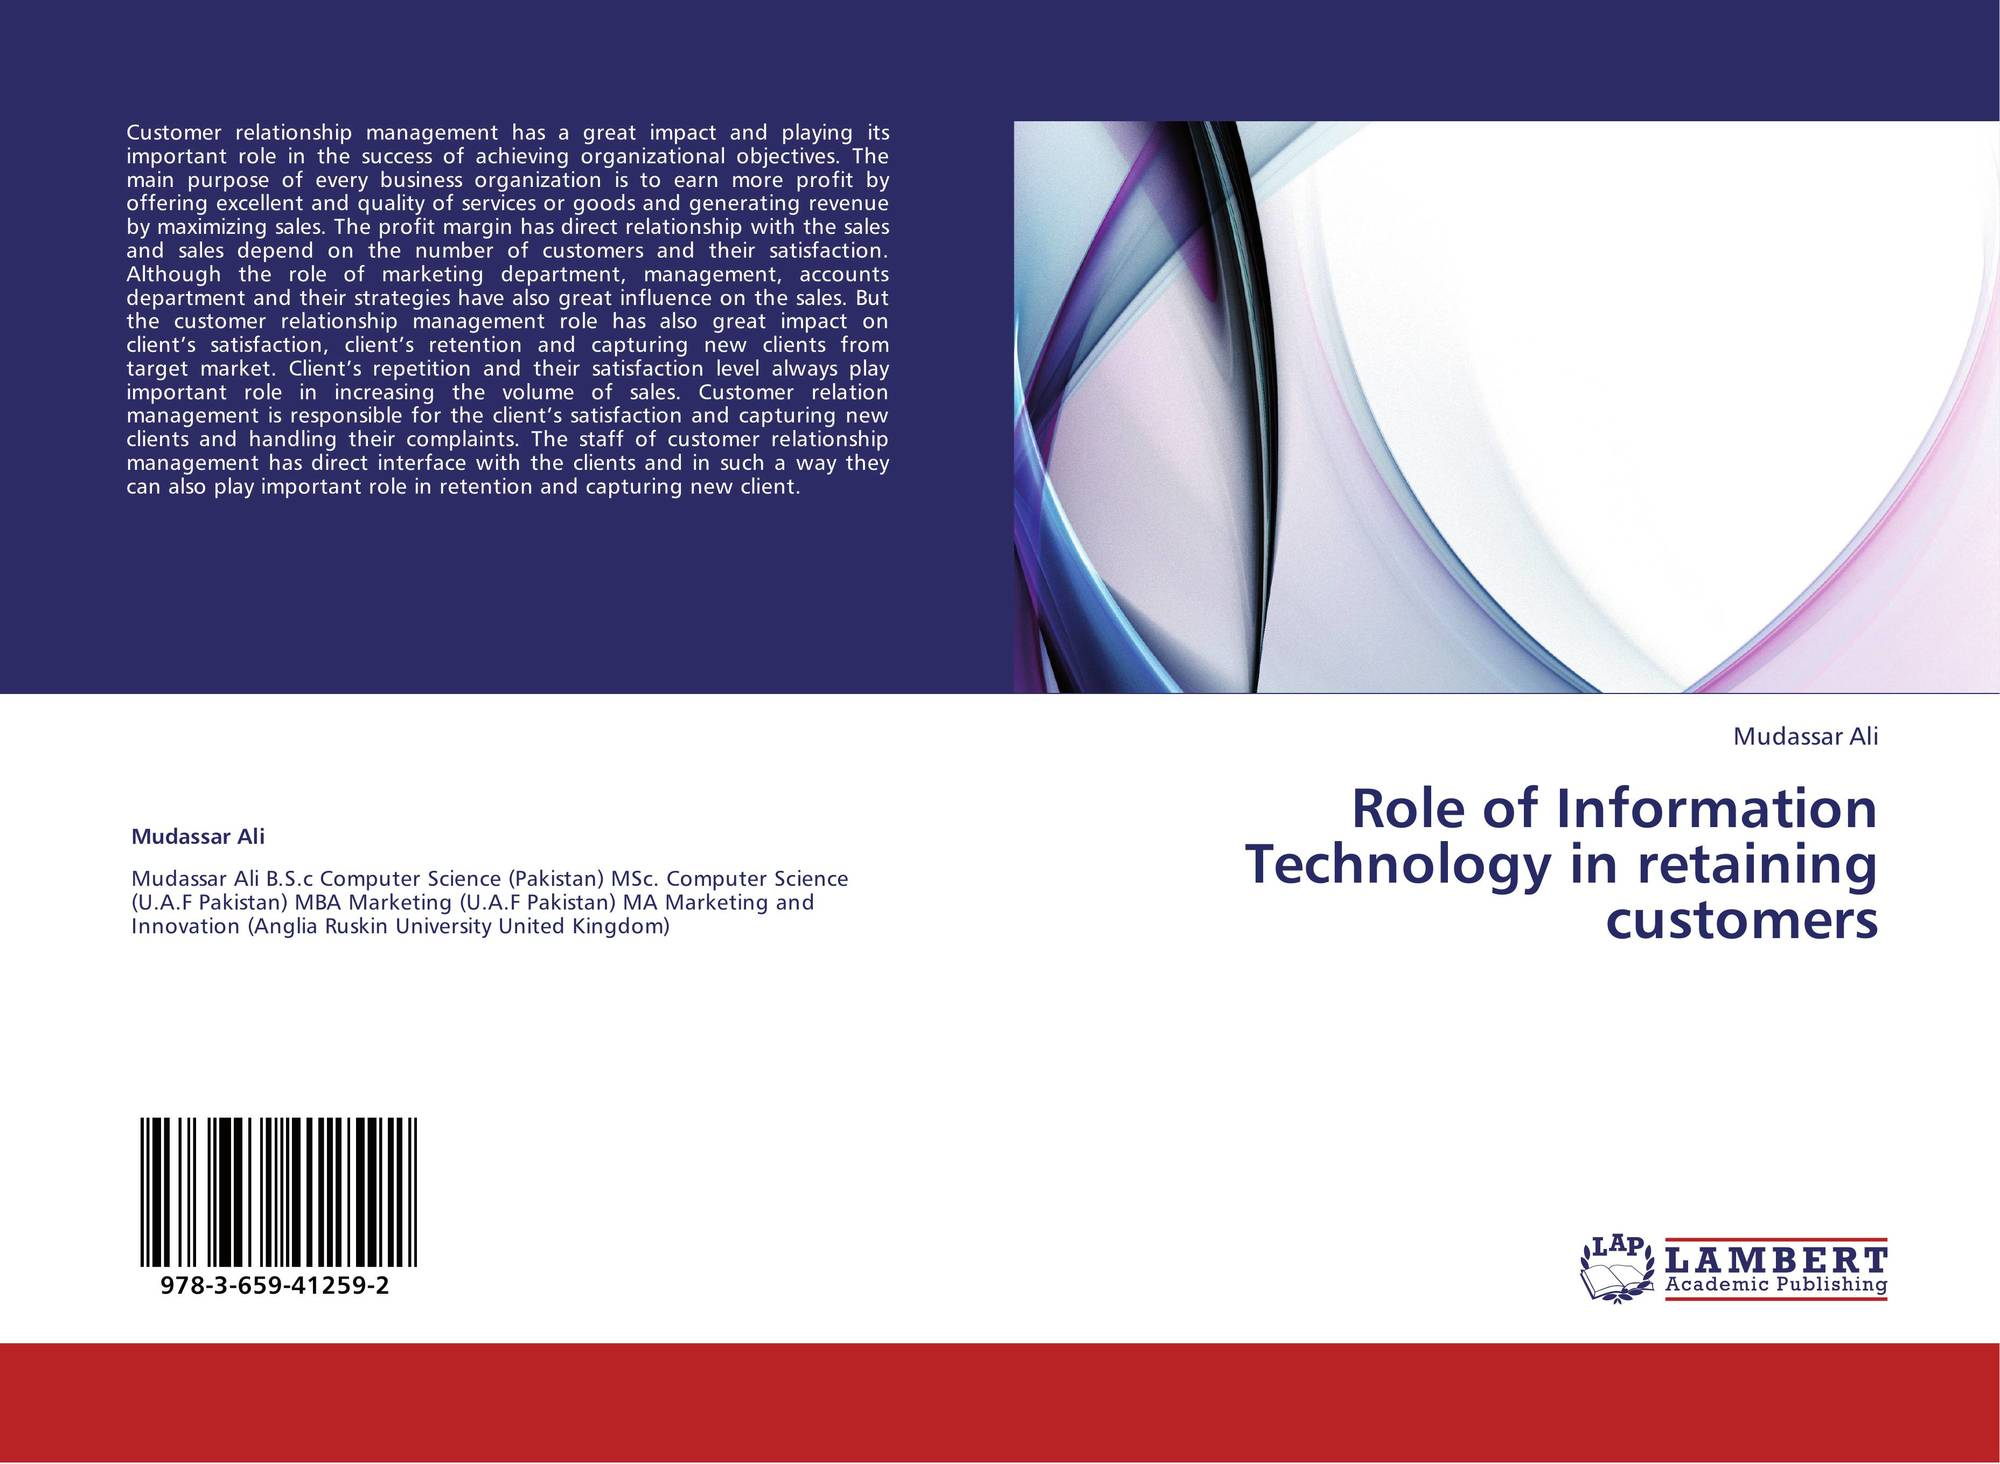 role of technology Impact of technology change on society major impacts of technology changes on industrialization, urbanization, modernization, unemployment, war and changes in social.